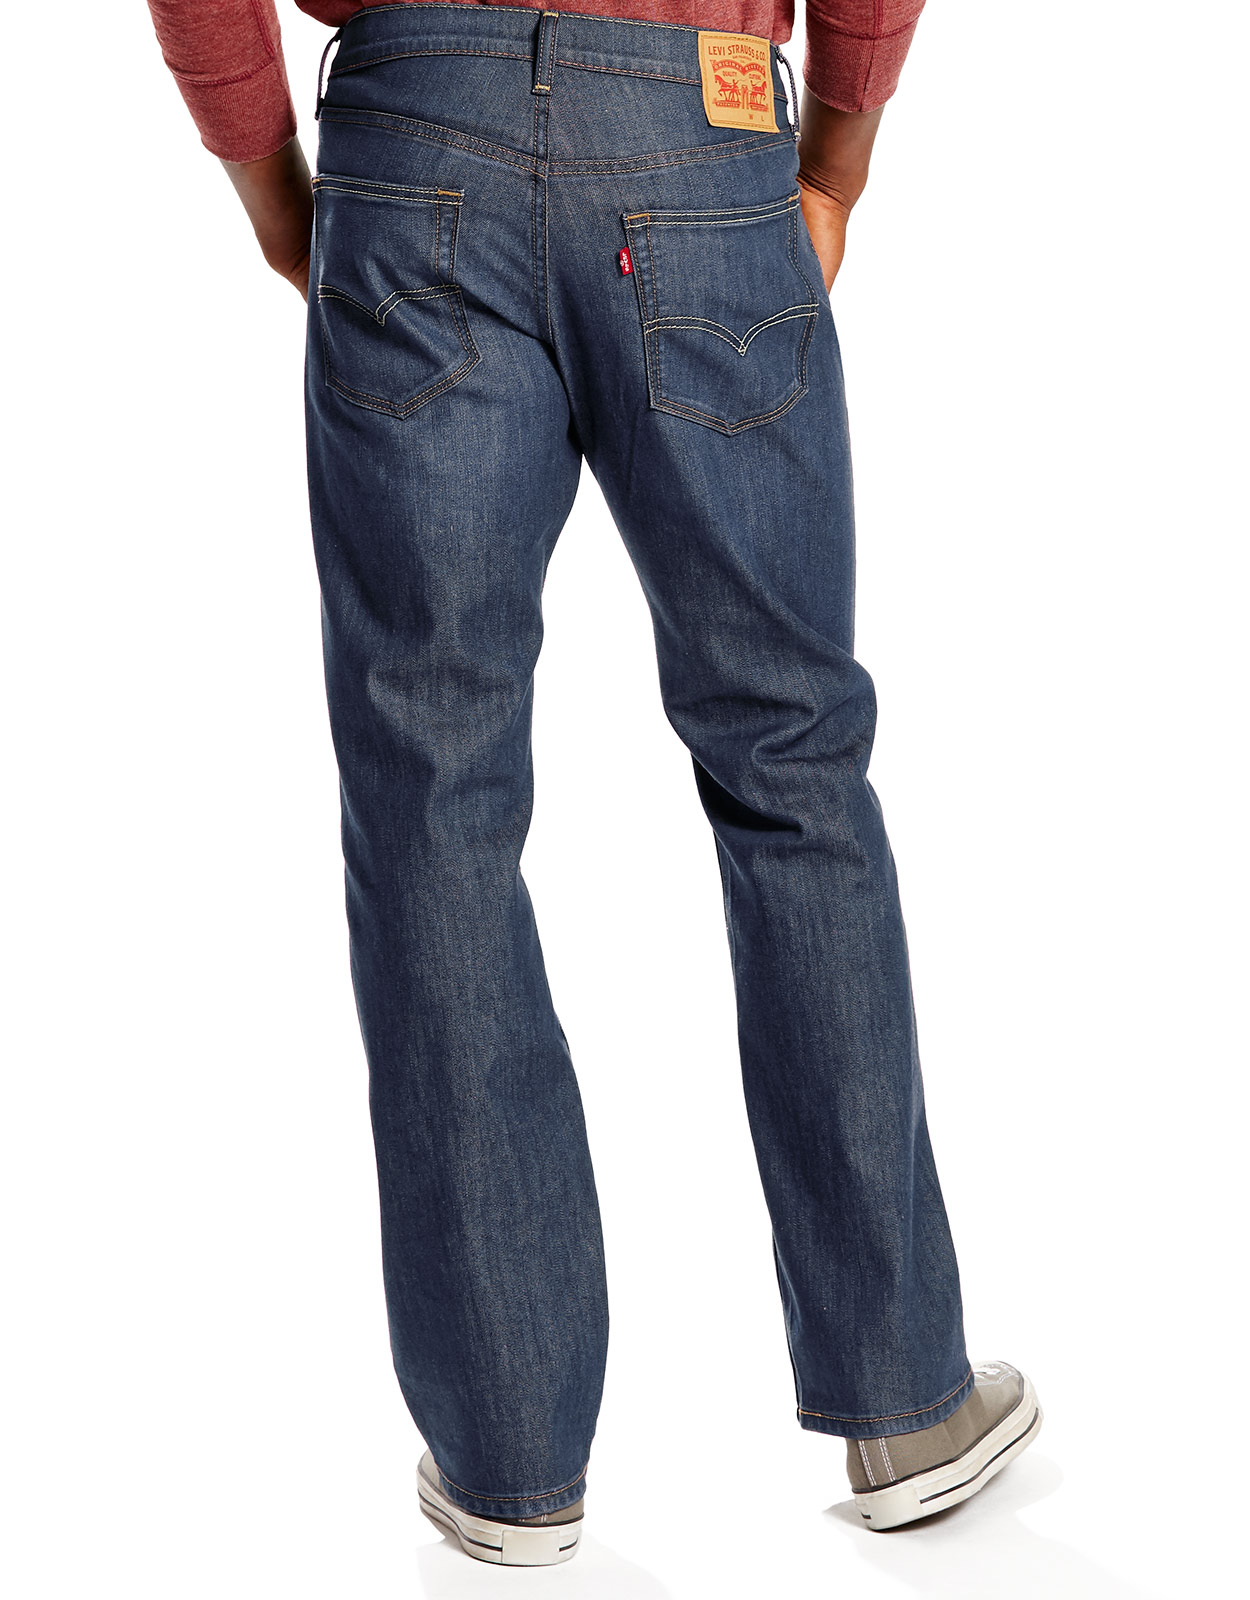 Levi's Men's 559 Relaxed Straight Stretch Low Rise Relaxed Fit Straight Leg Jeans - Steely Blue